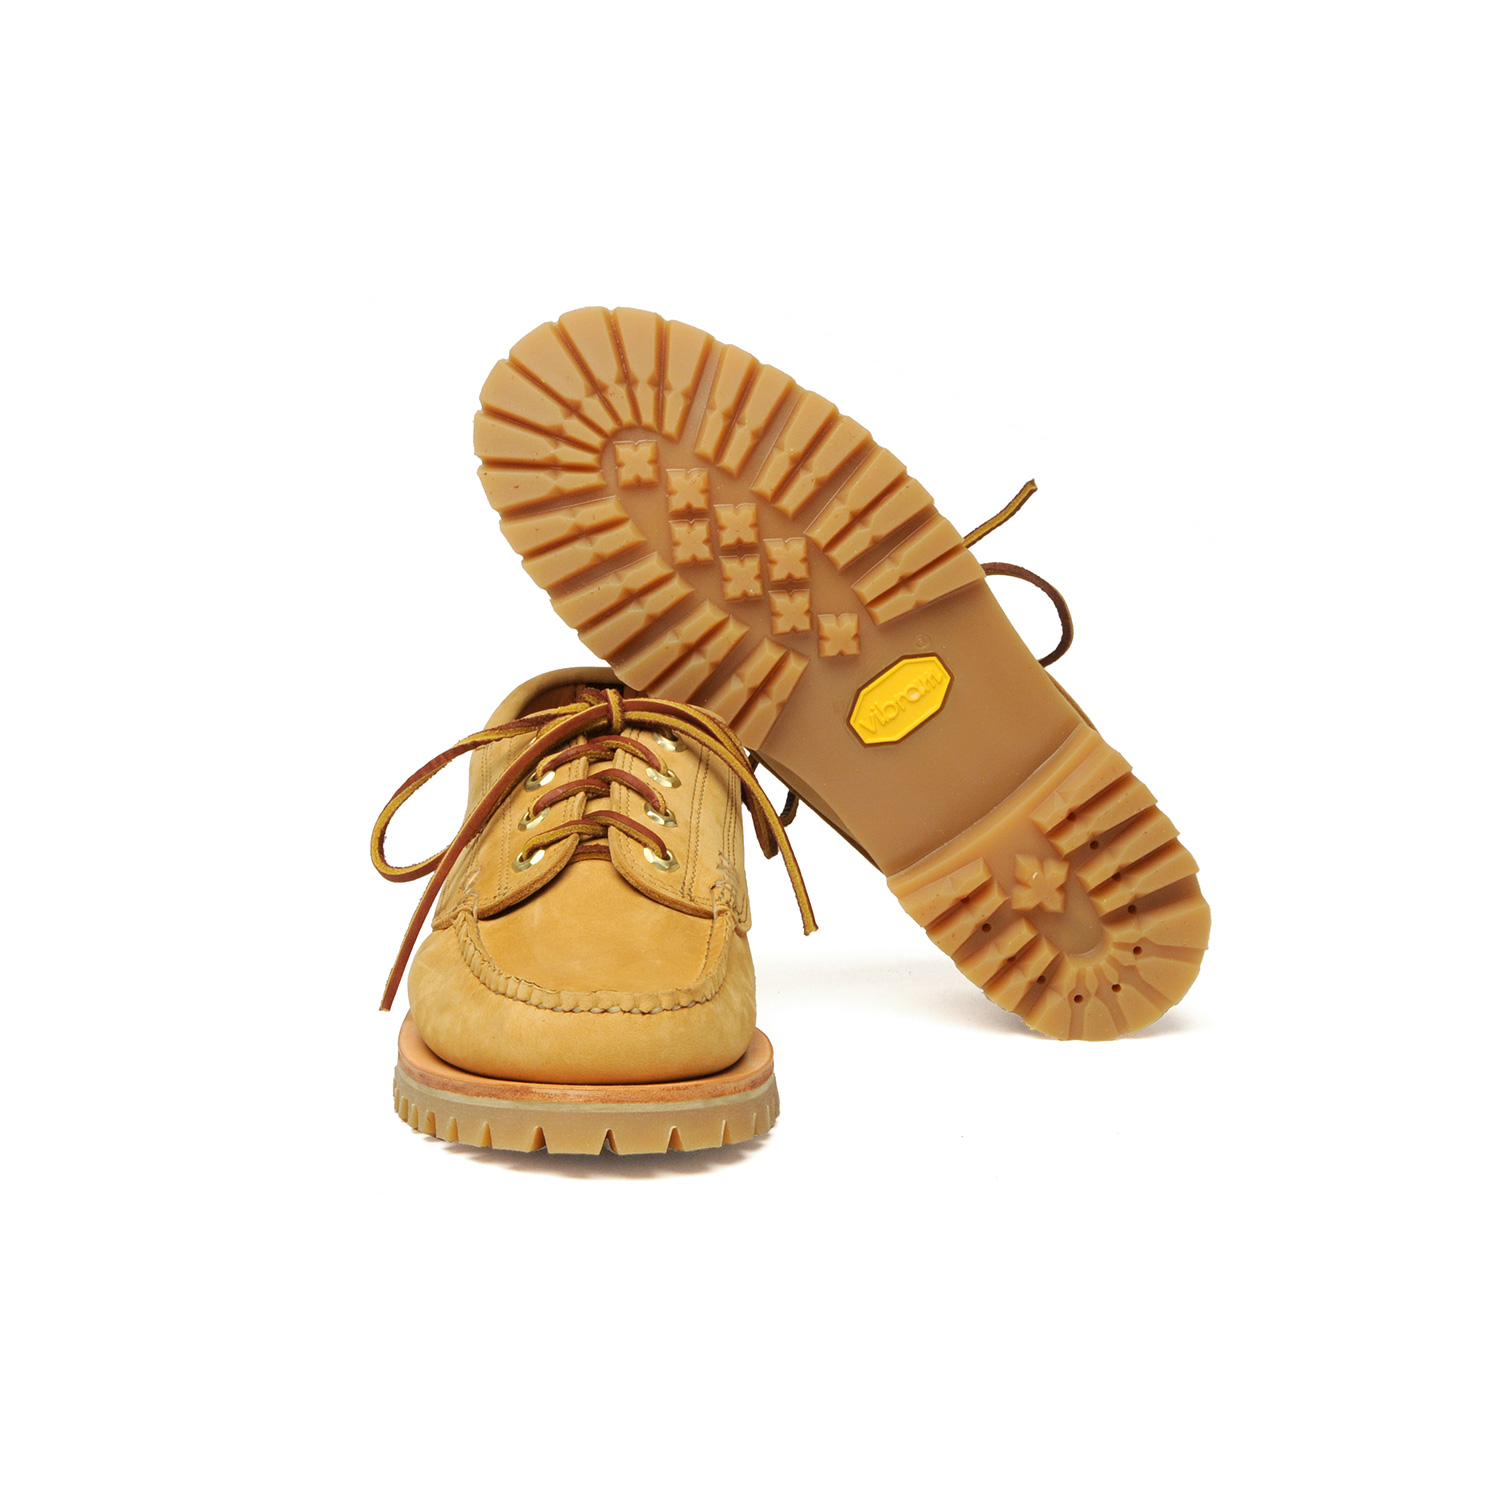 00944MH-ANGLER-MOC-W-LUG-SOLE,-D-B-BROWN,-OUTSOLE.jpg